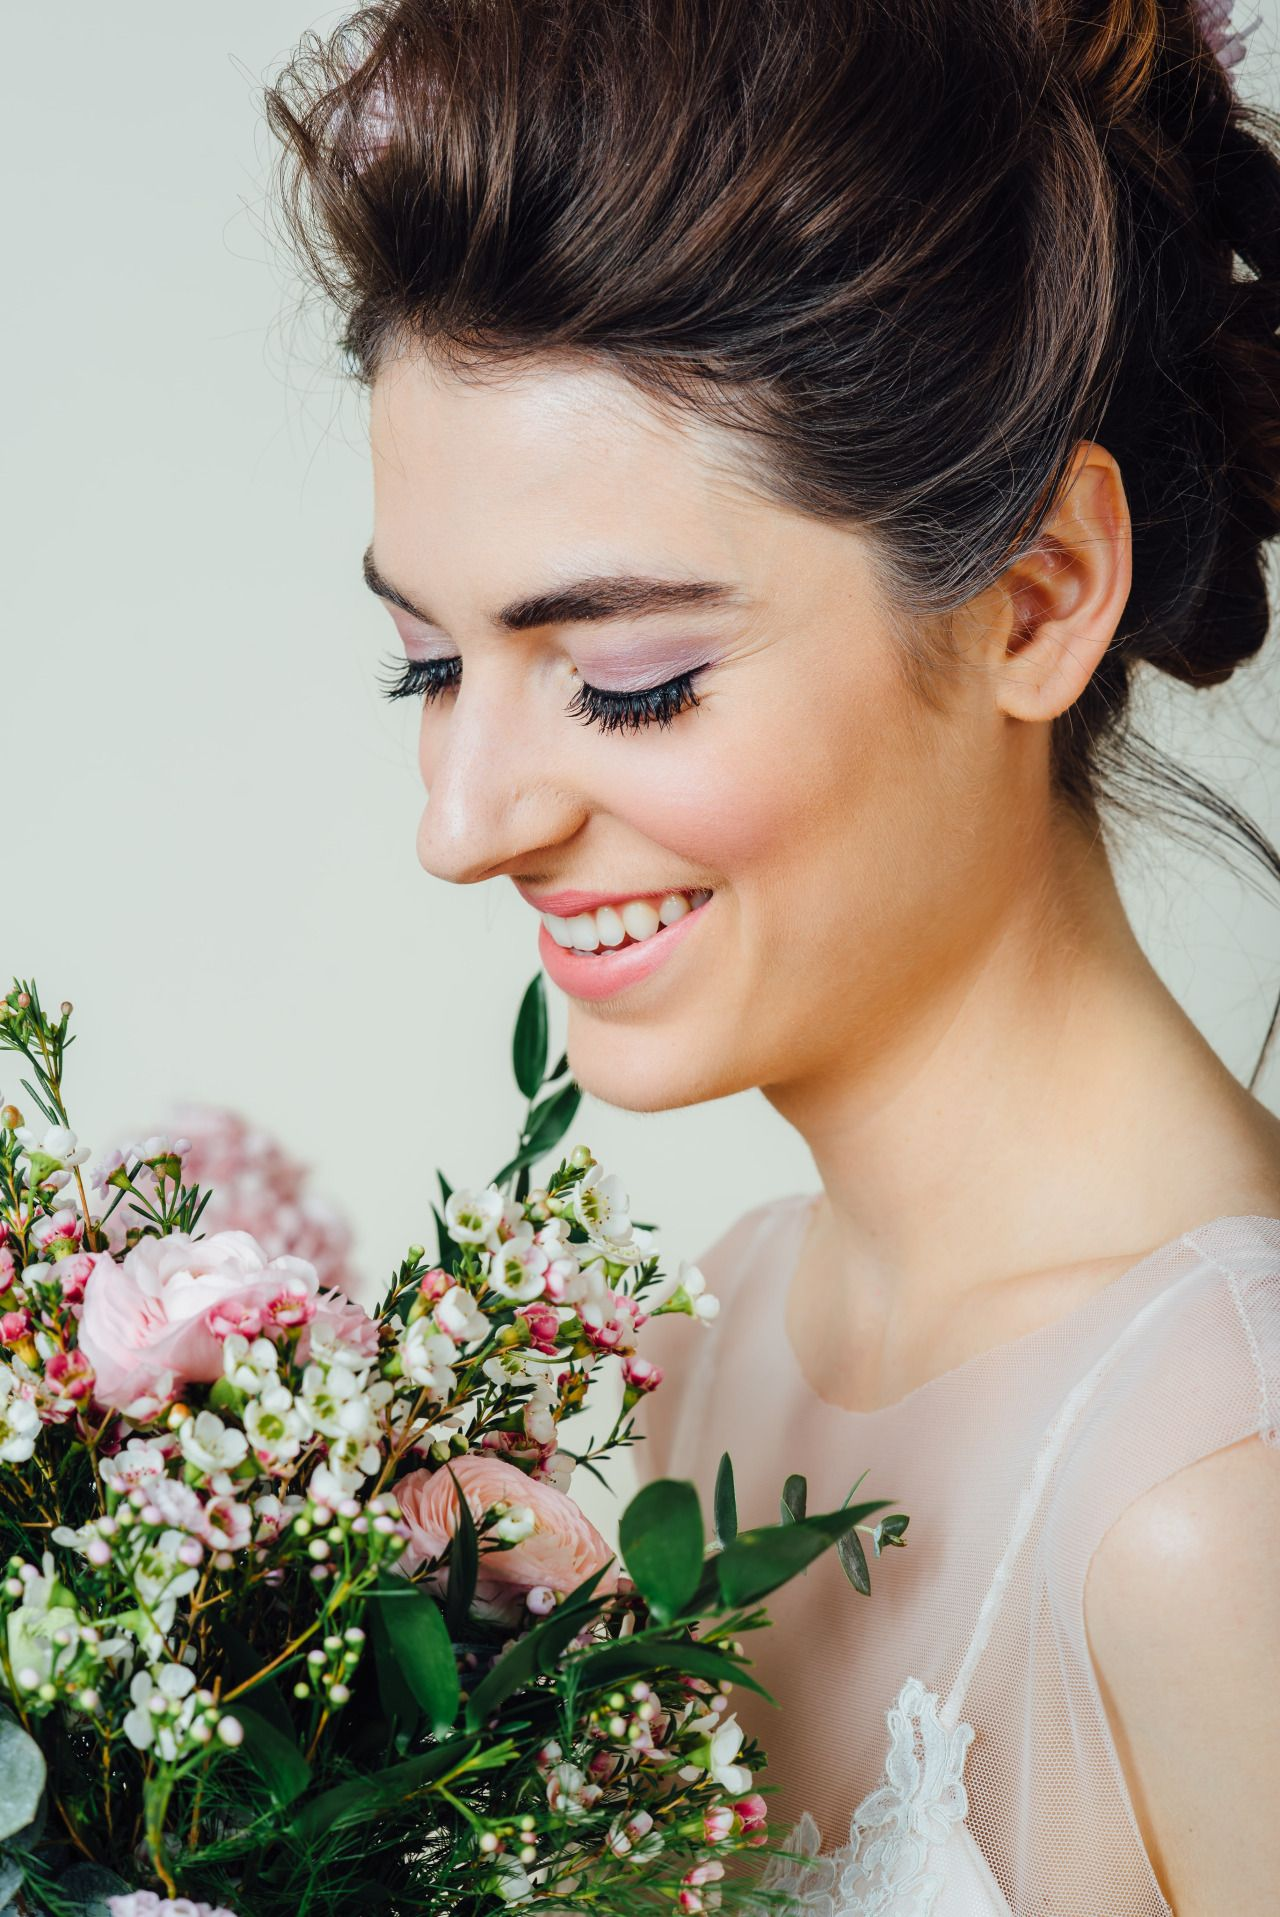 would you prefer diy or call the best wedding makeup artist